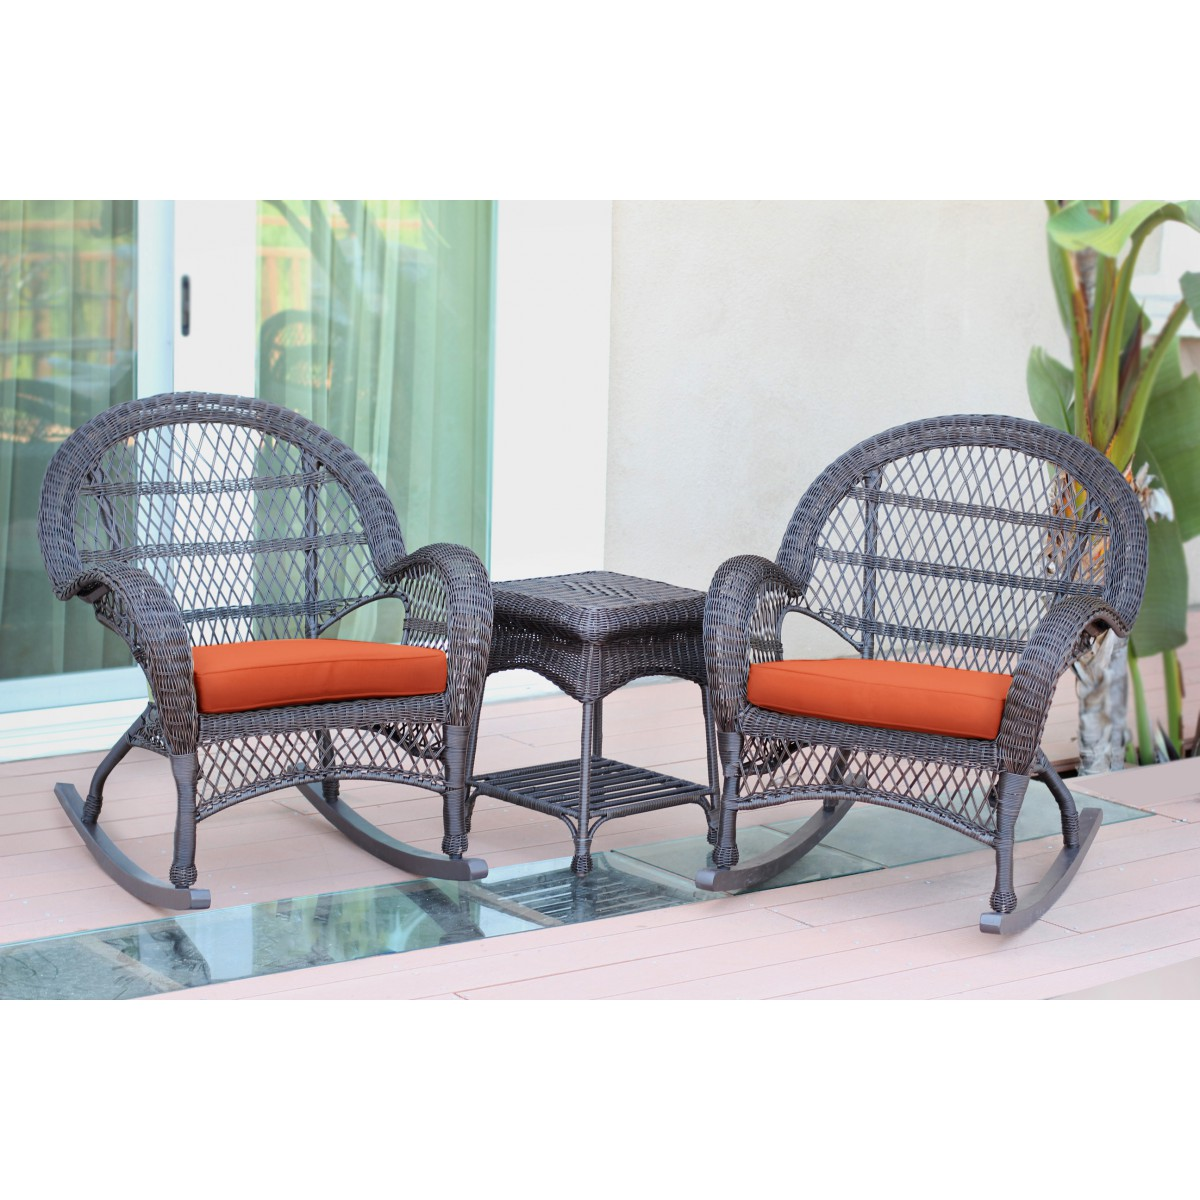 3pc Santa Maria Espresso Rocker Wicker Chair Set Orange